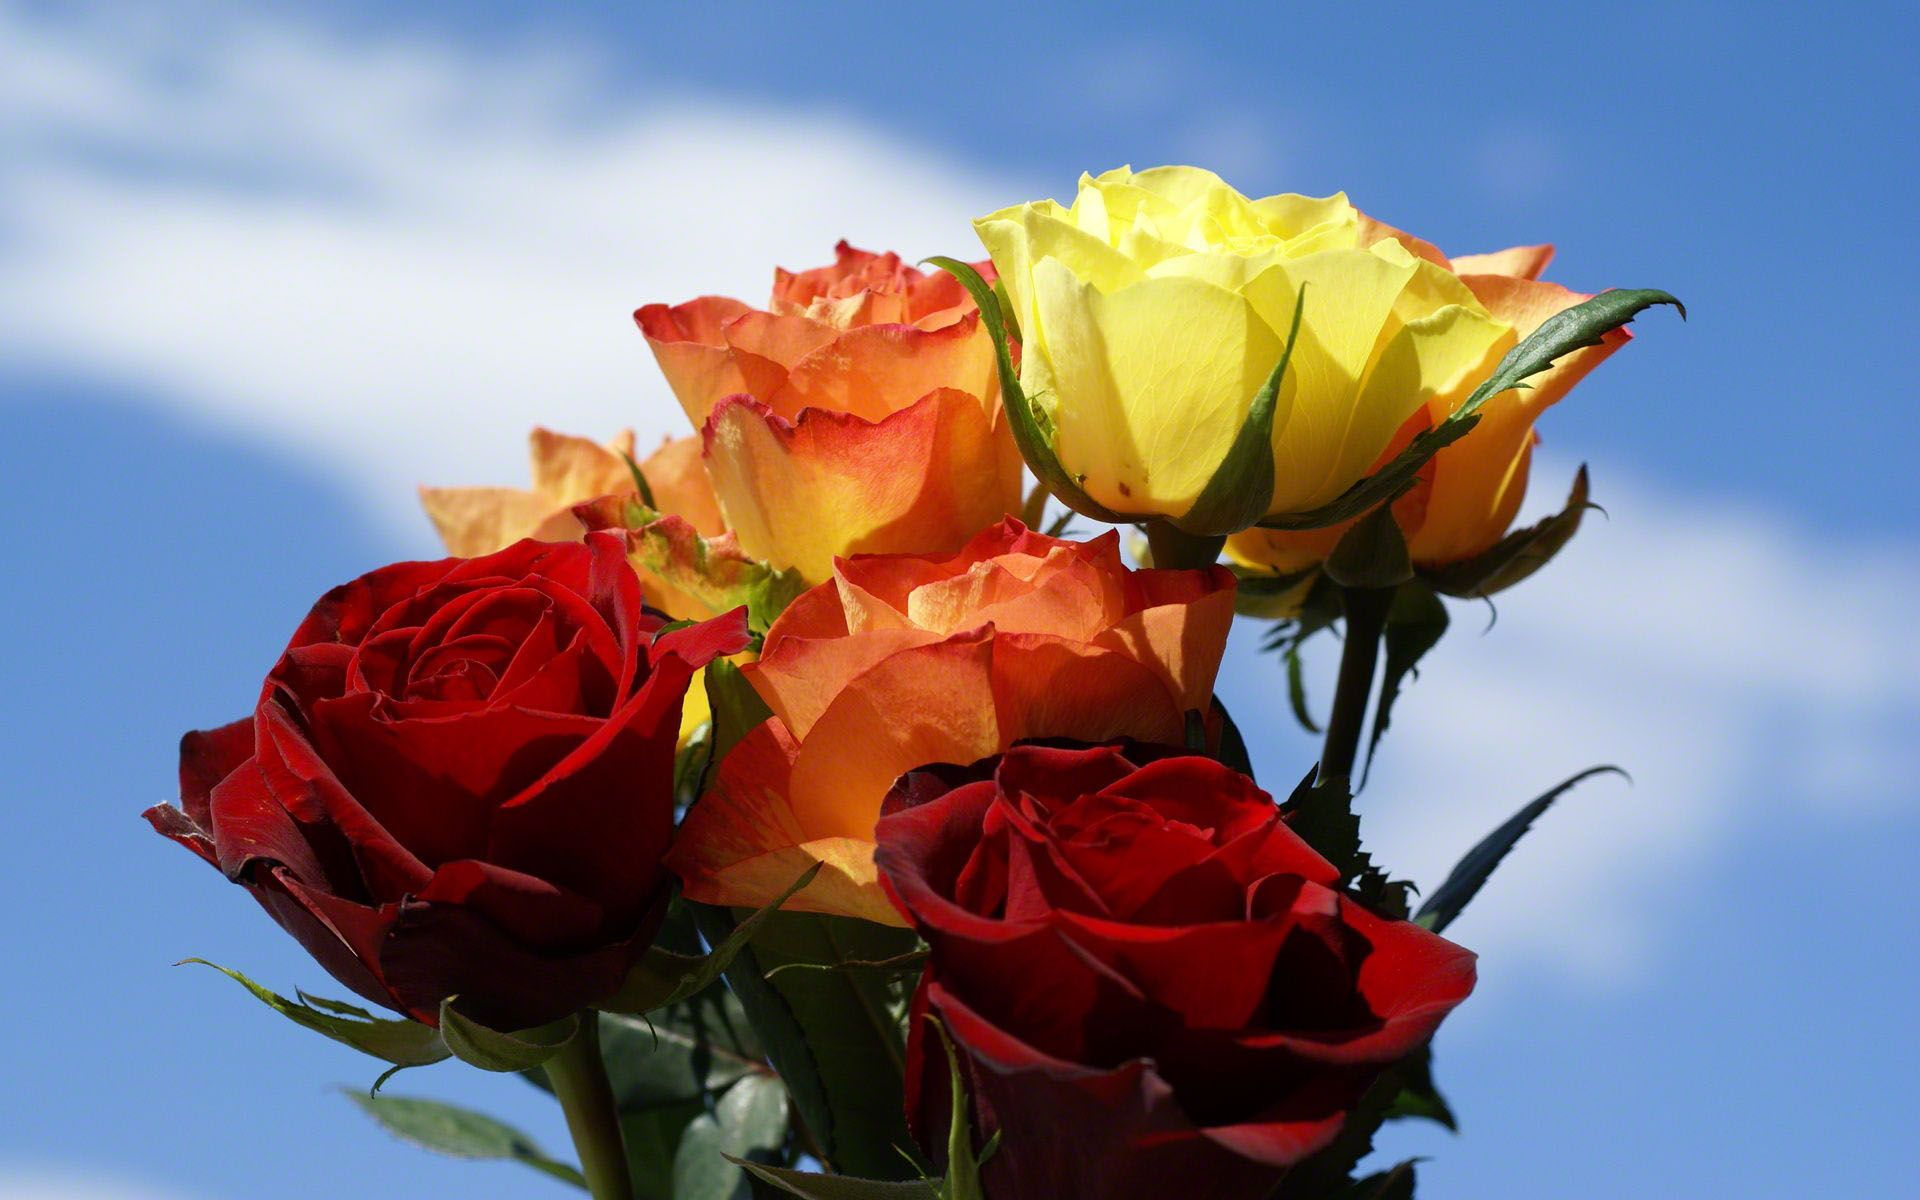 Roses high yellow red world orange bouquet resolution roses are beautiful flowers and they arent always red there are over 100 different species in all colors wallpapers with pink blue white yellow roses dhlflorist Gallery